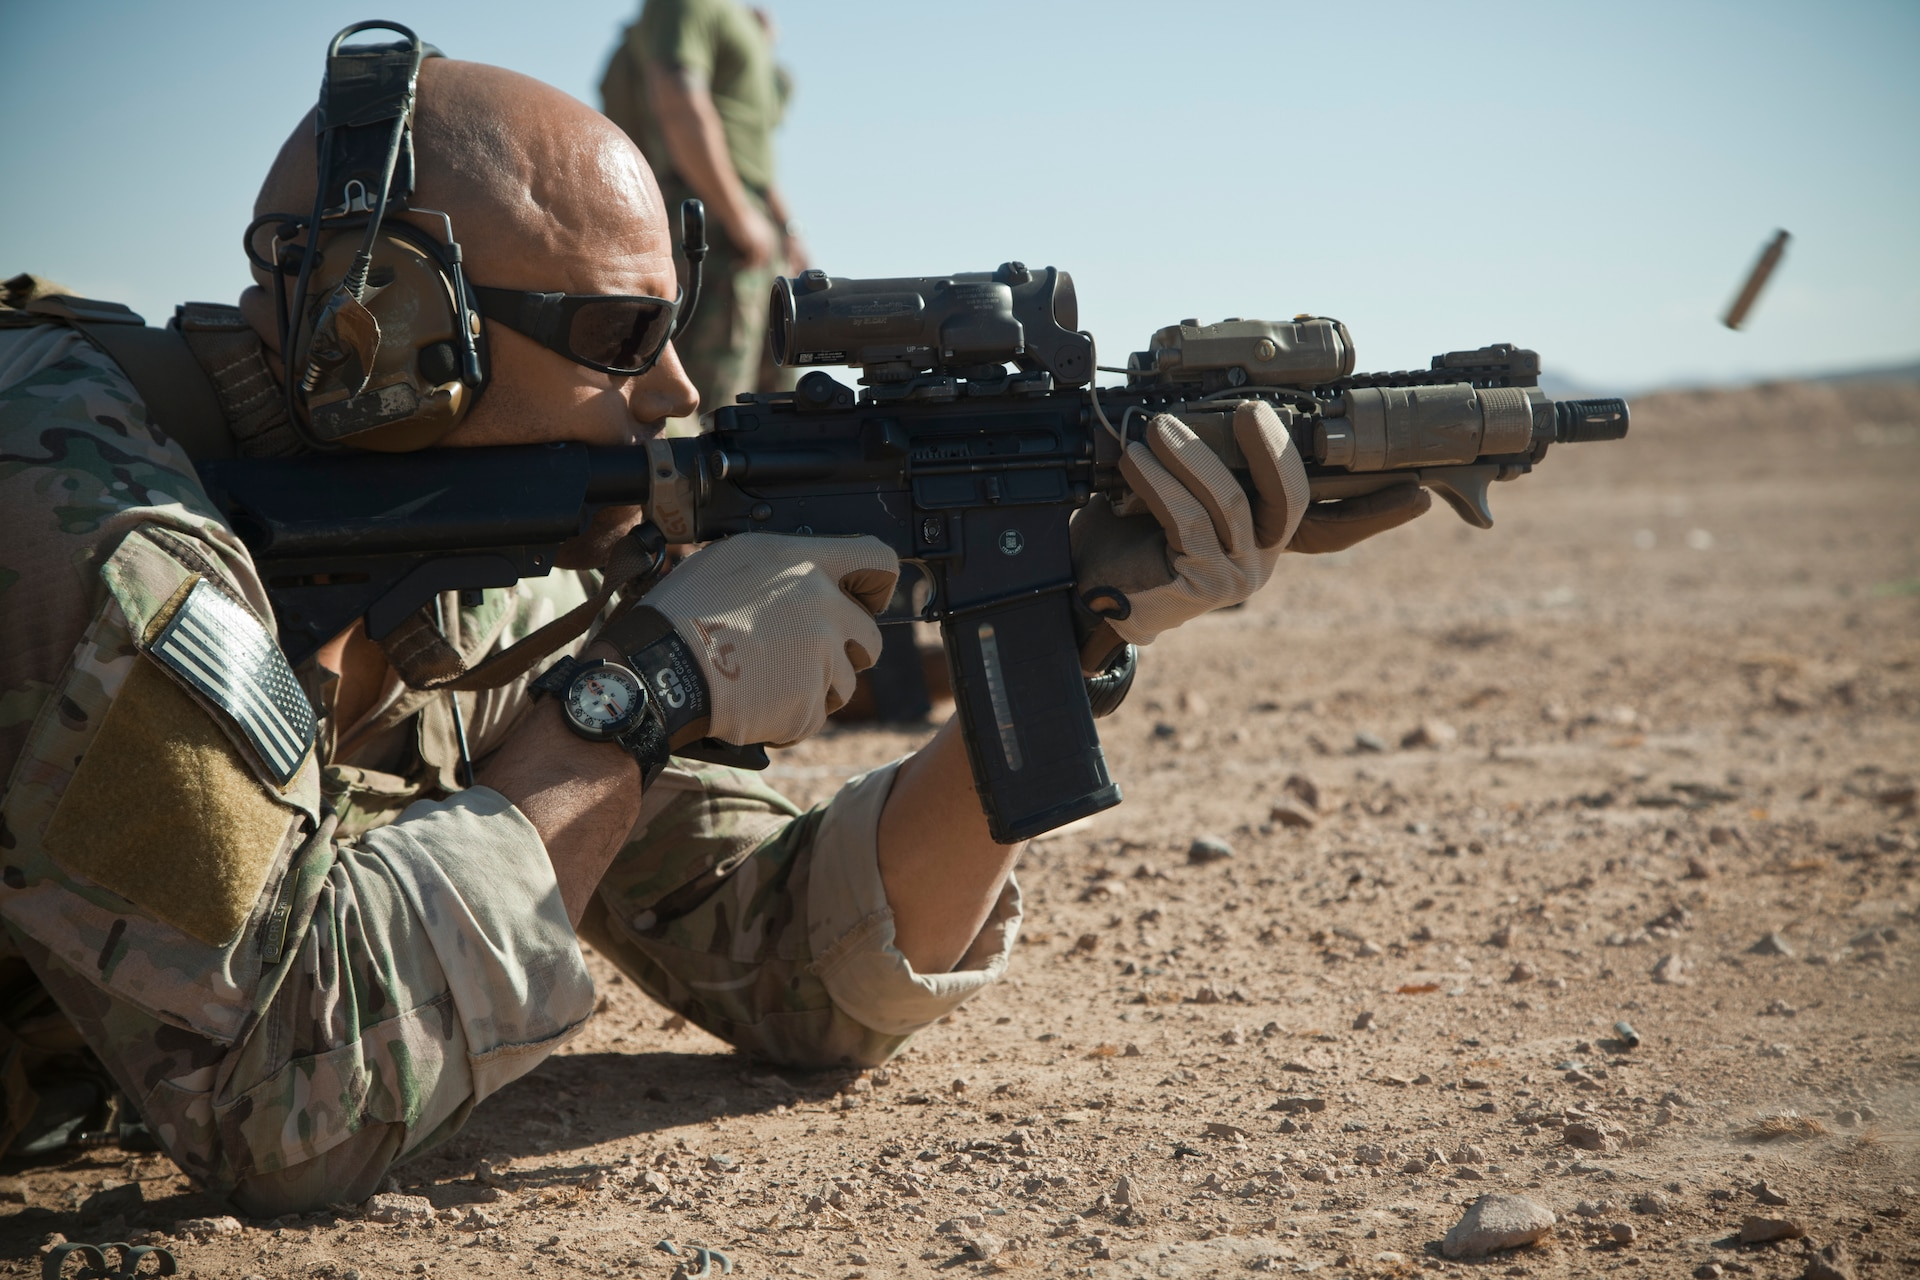 A coalition force member fires his M4 carbine during live fire training on a base in Herat province, Afghanistan, Nov. 9, 2012.